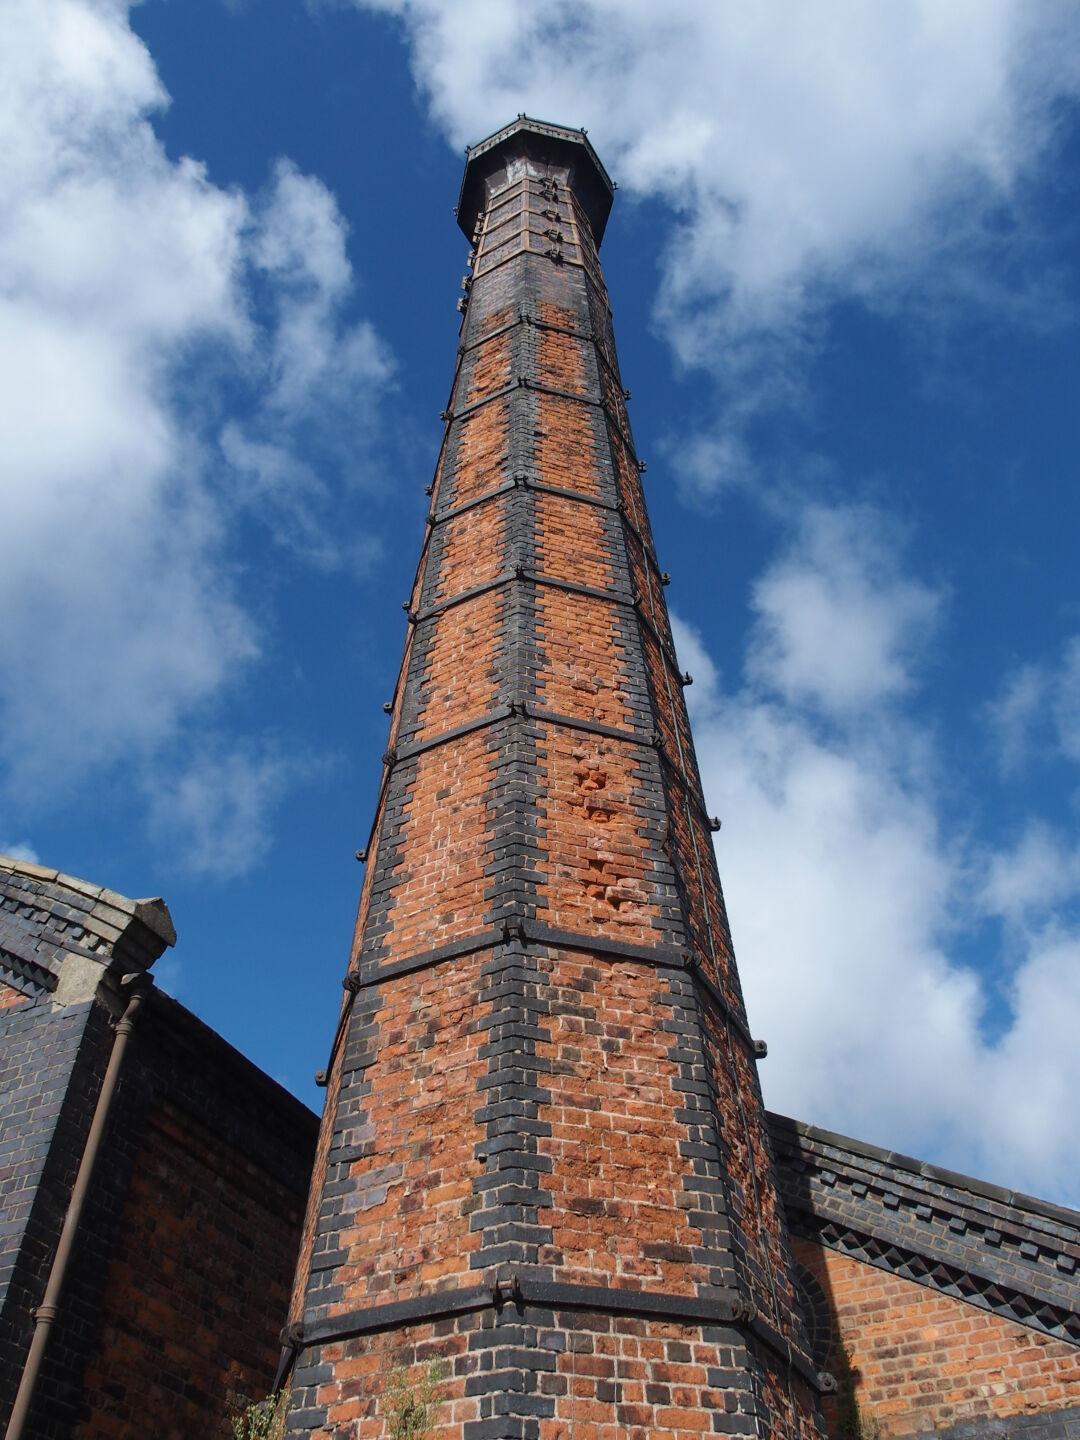 Chimney at the National Waterways Museum.